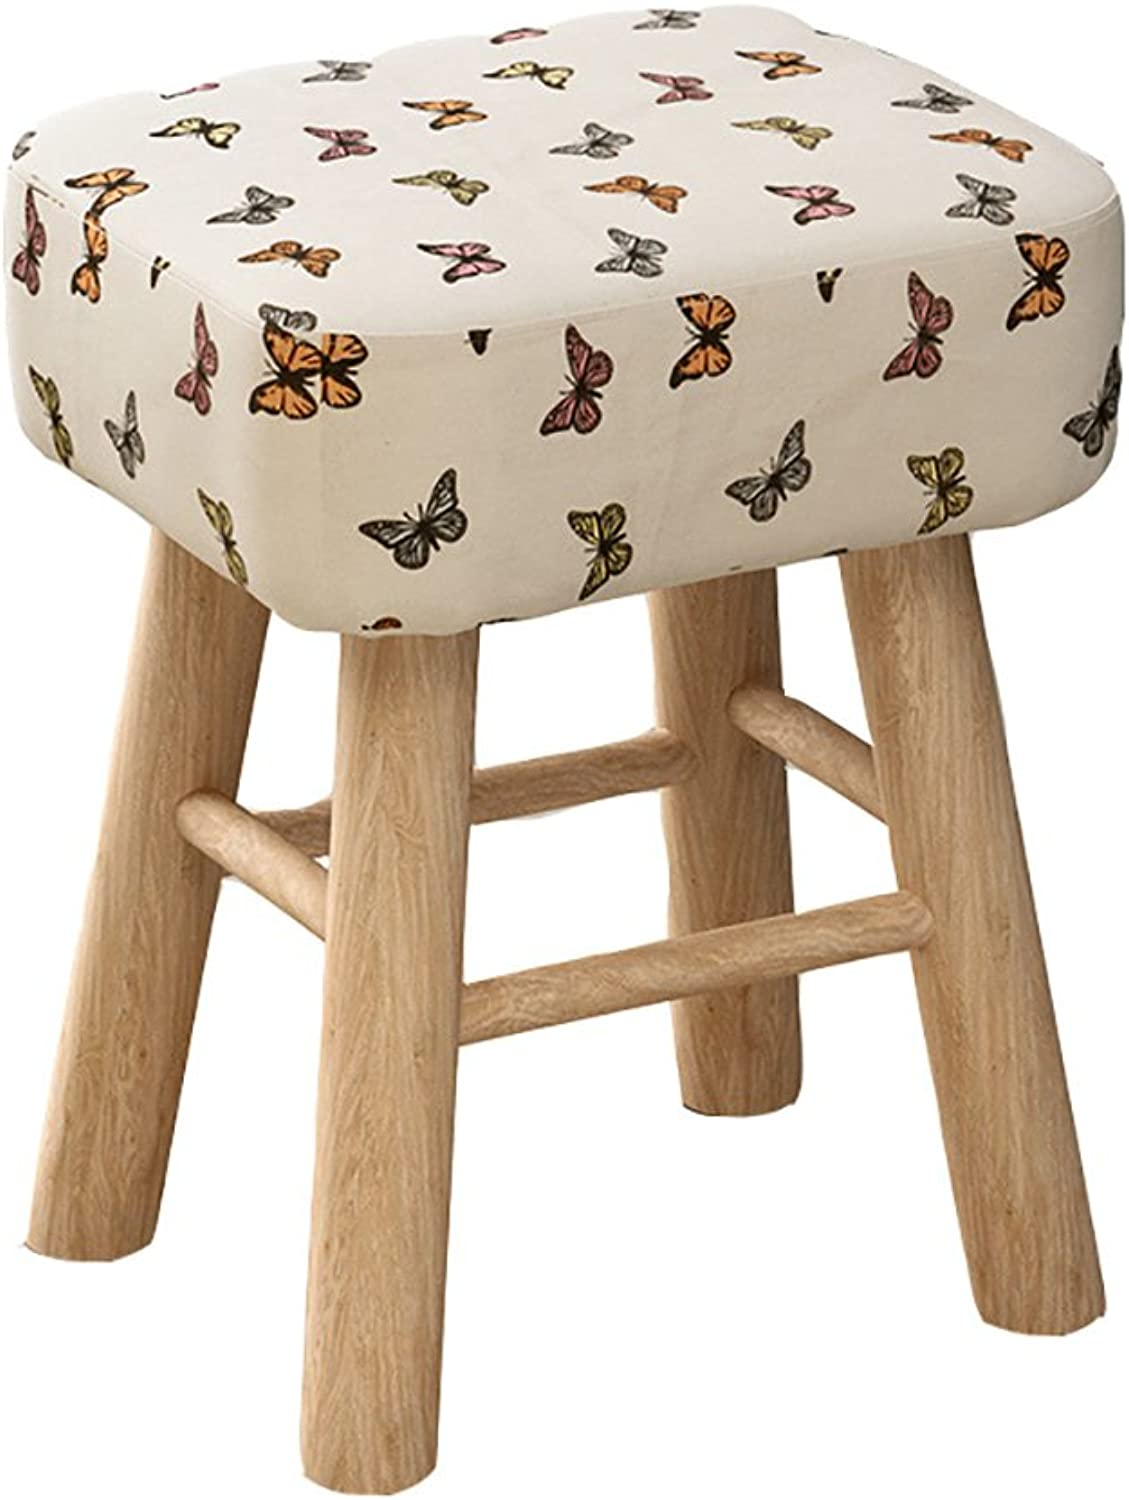 WY Solid Wood Stool shoes for The Fashion Stool Creative shoes Stool Sofa Stool Small Stool Stools Furniture (color   B, Size   35  30  43cm)